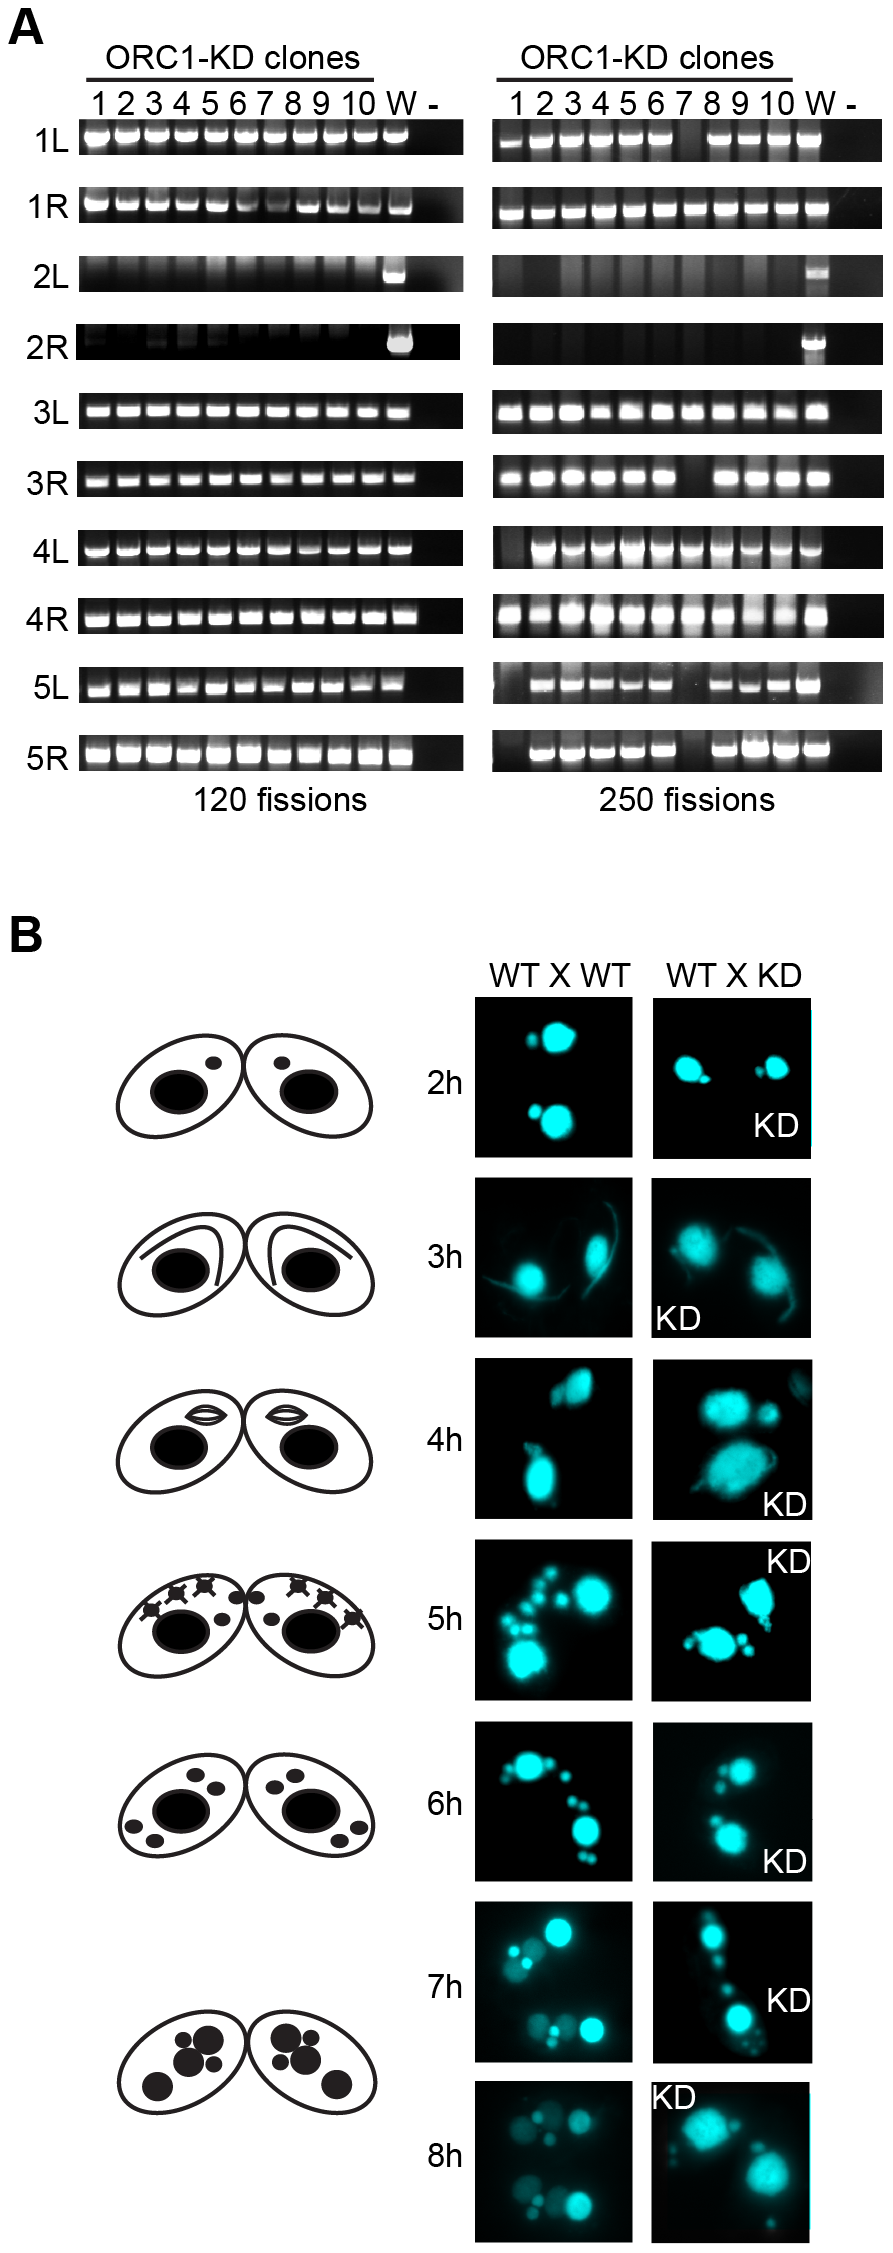 Micronuclear genome instability in ORC1 knockdown cells.